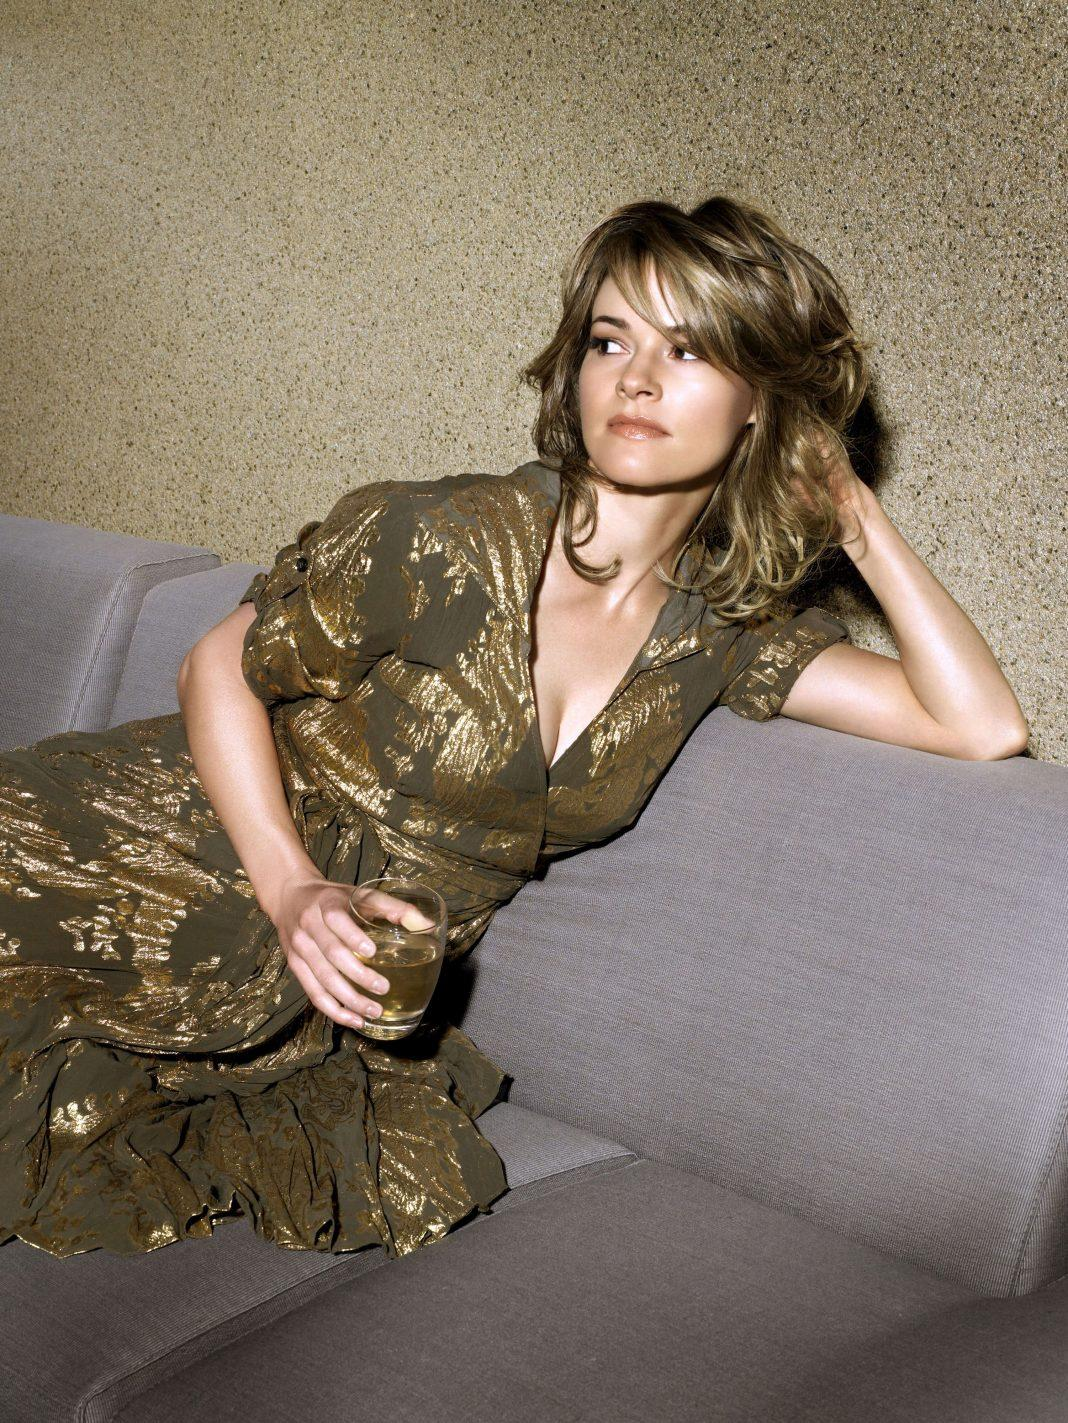 Leisha Hailey hot pictures